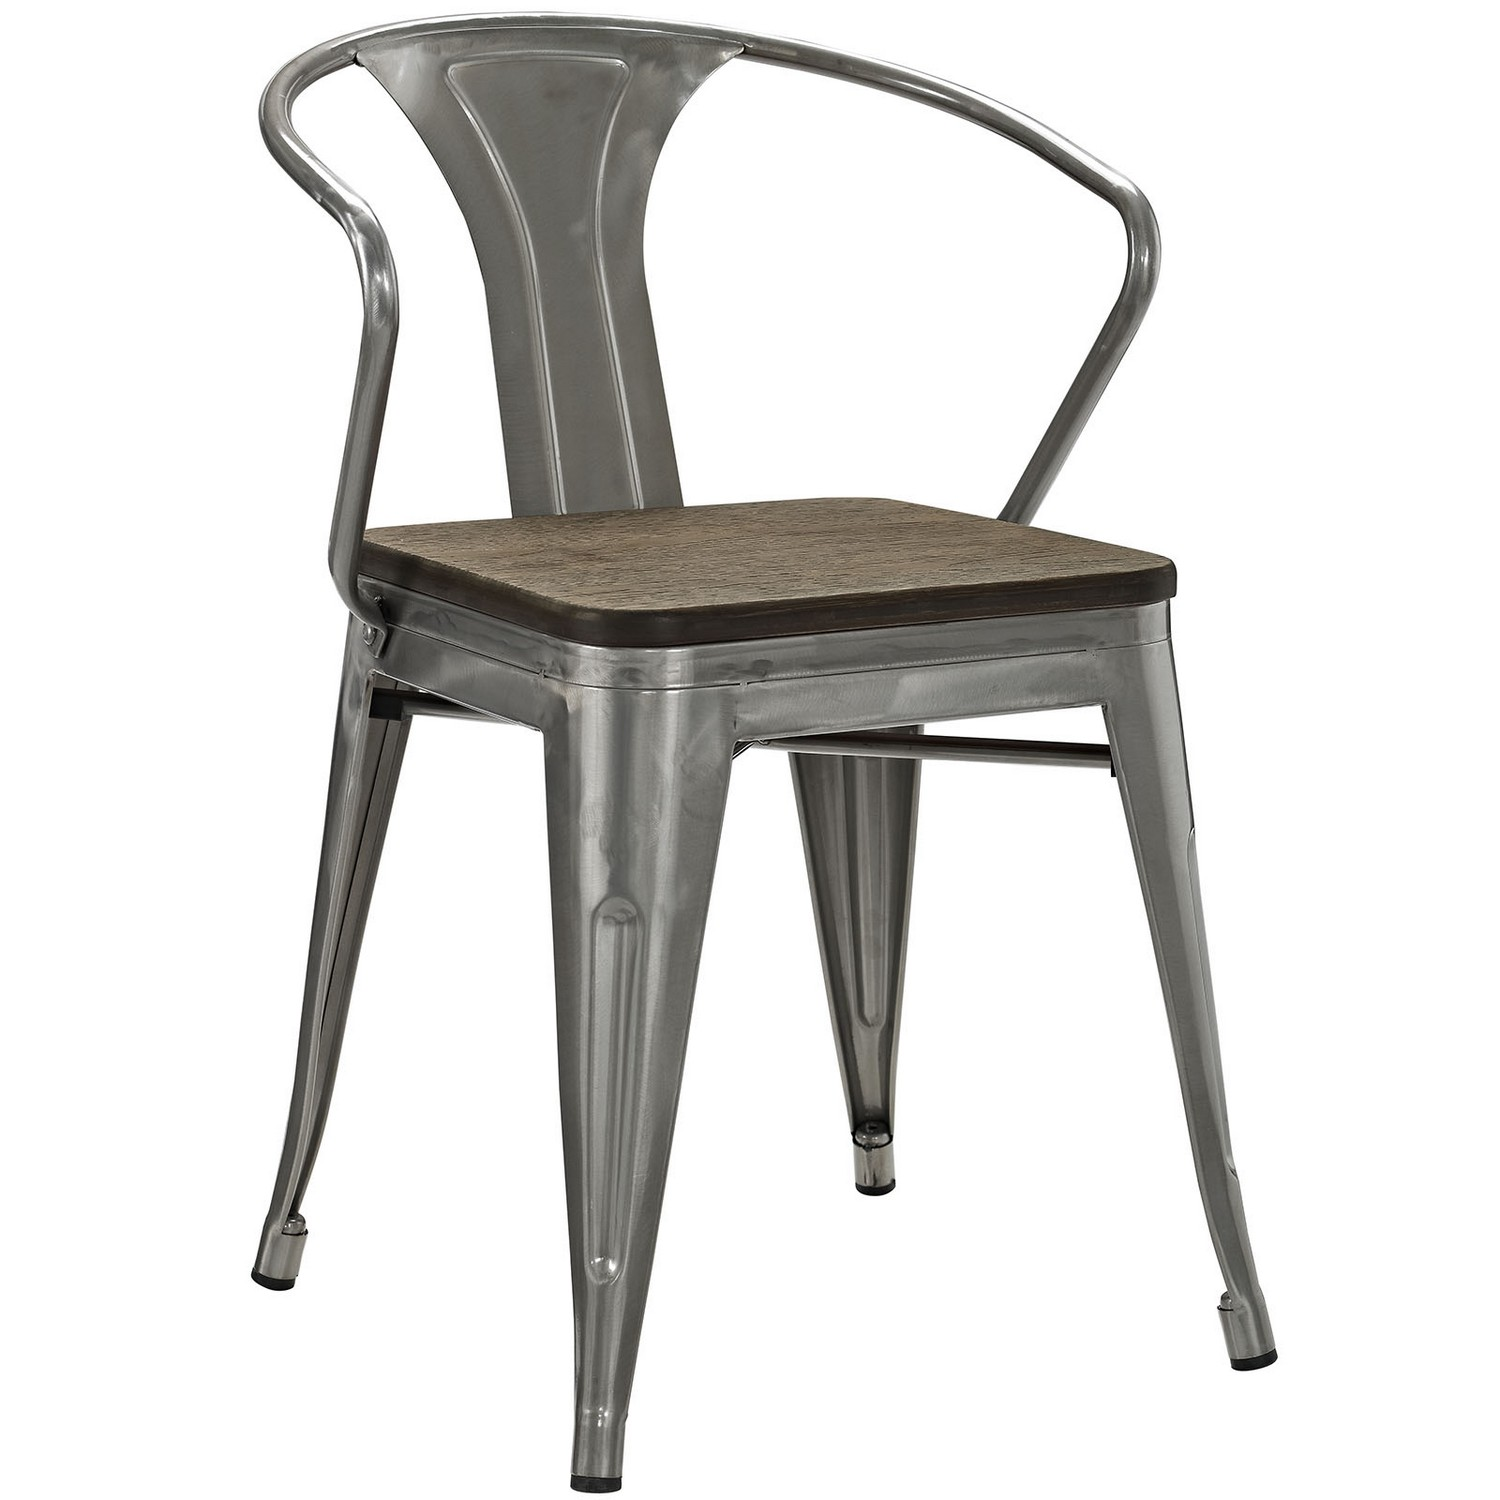 Modway Promenade Dining Chair with Bamboo Seat - Gunmetal